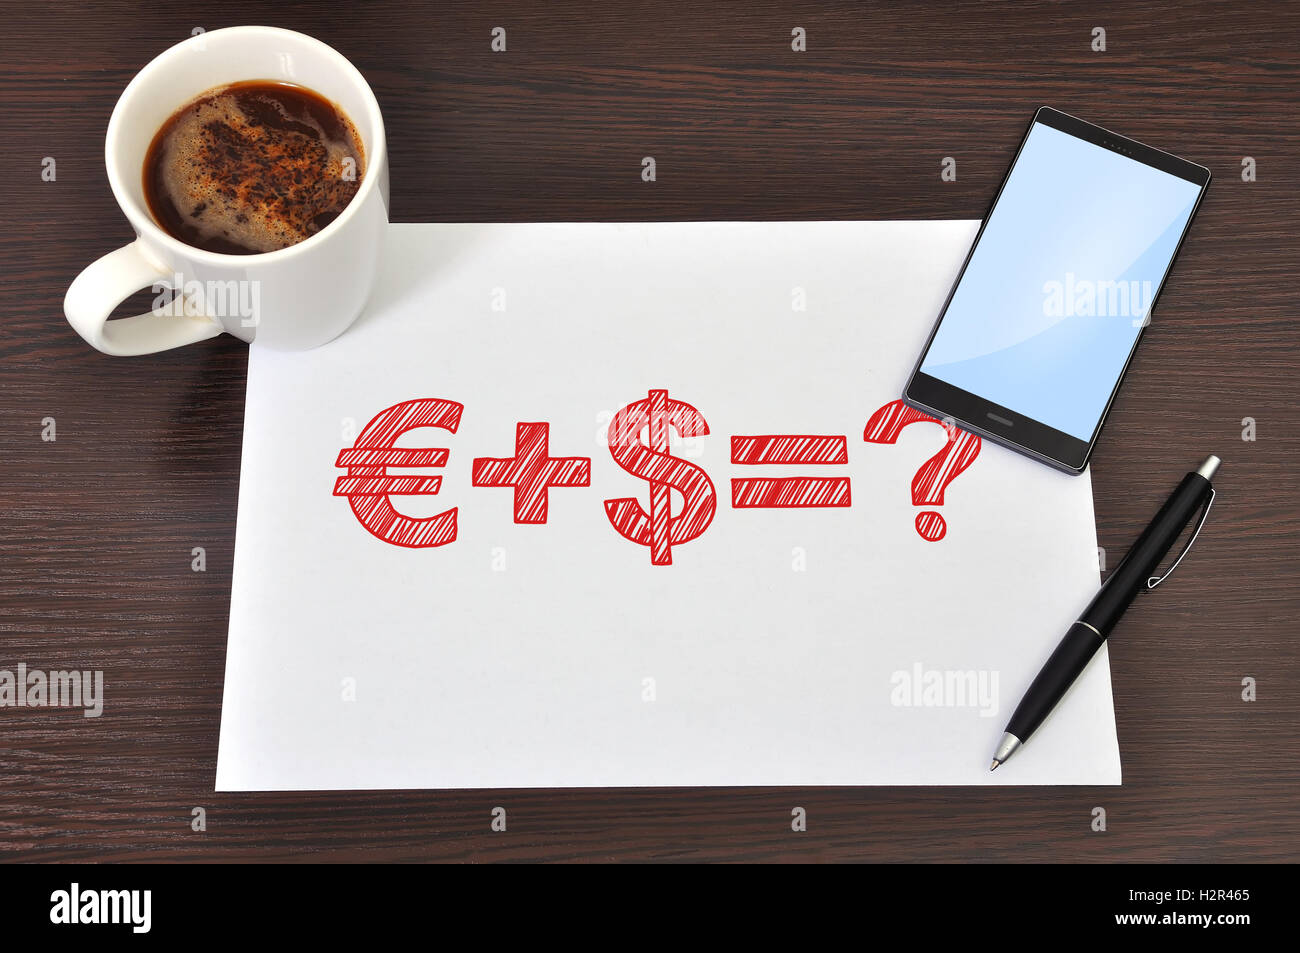 business formula - Stock Image